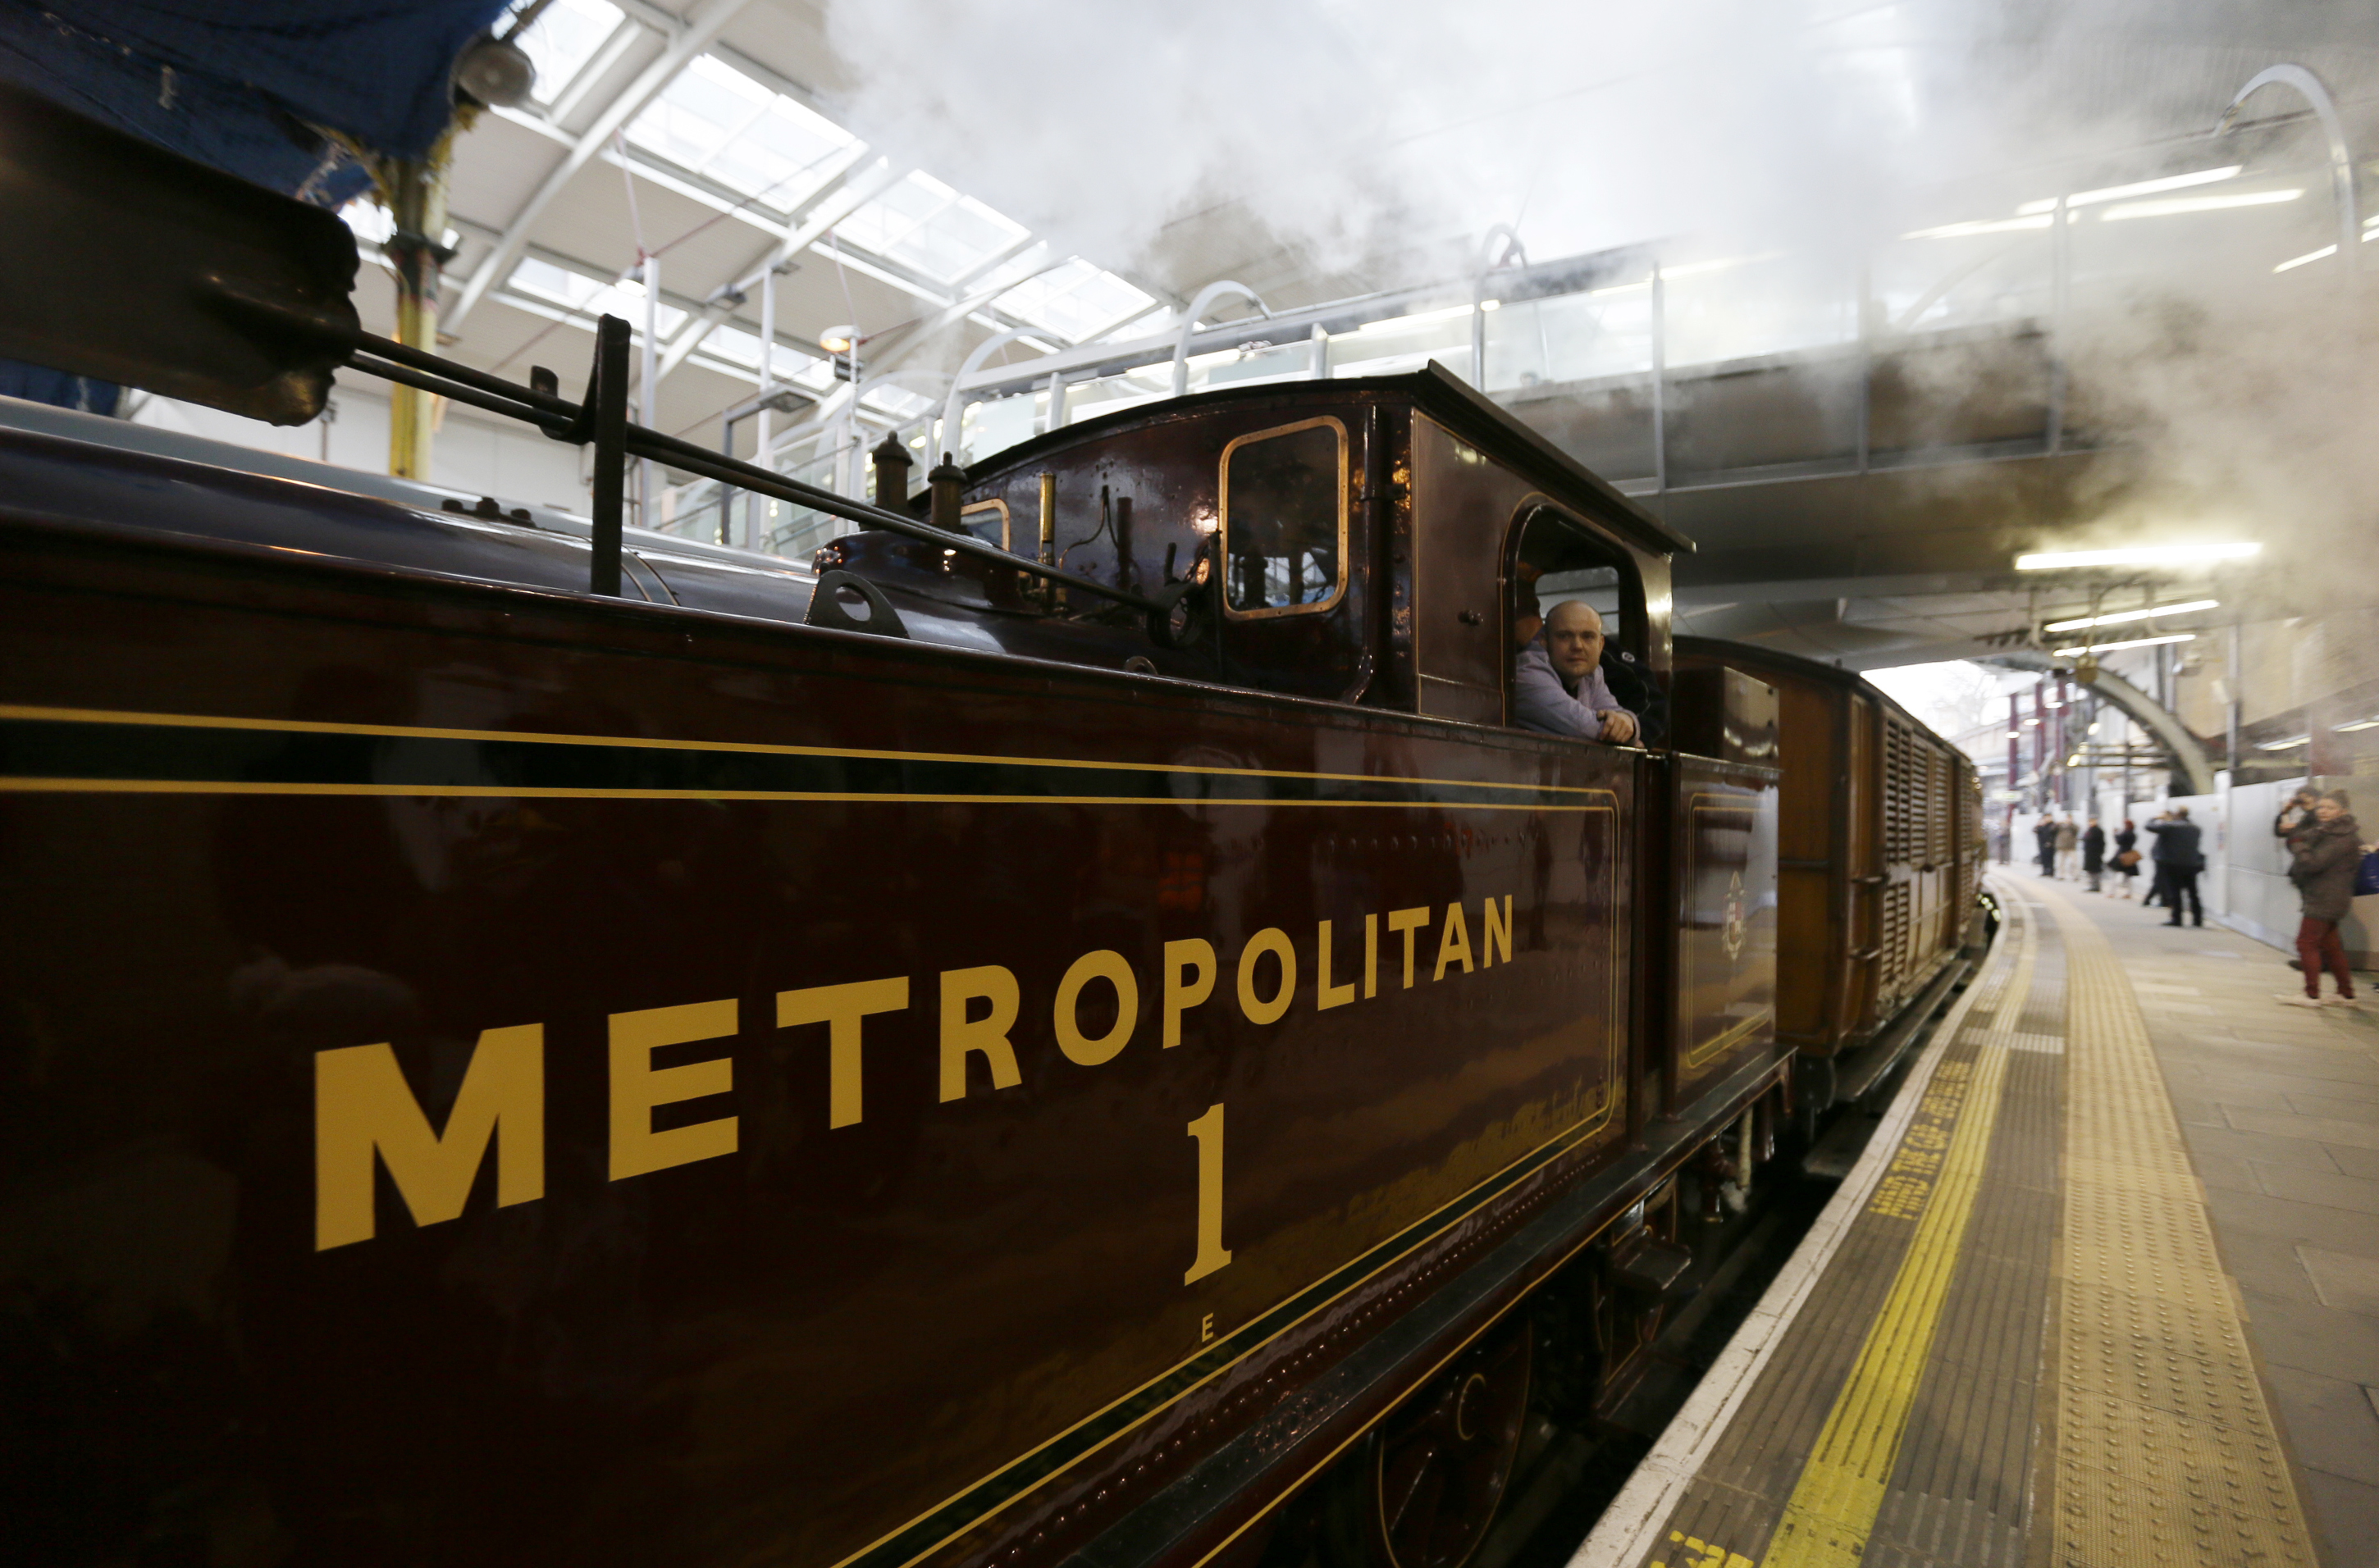 Gallery: The Tube celebrates 150 years of service – 13 January 2013